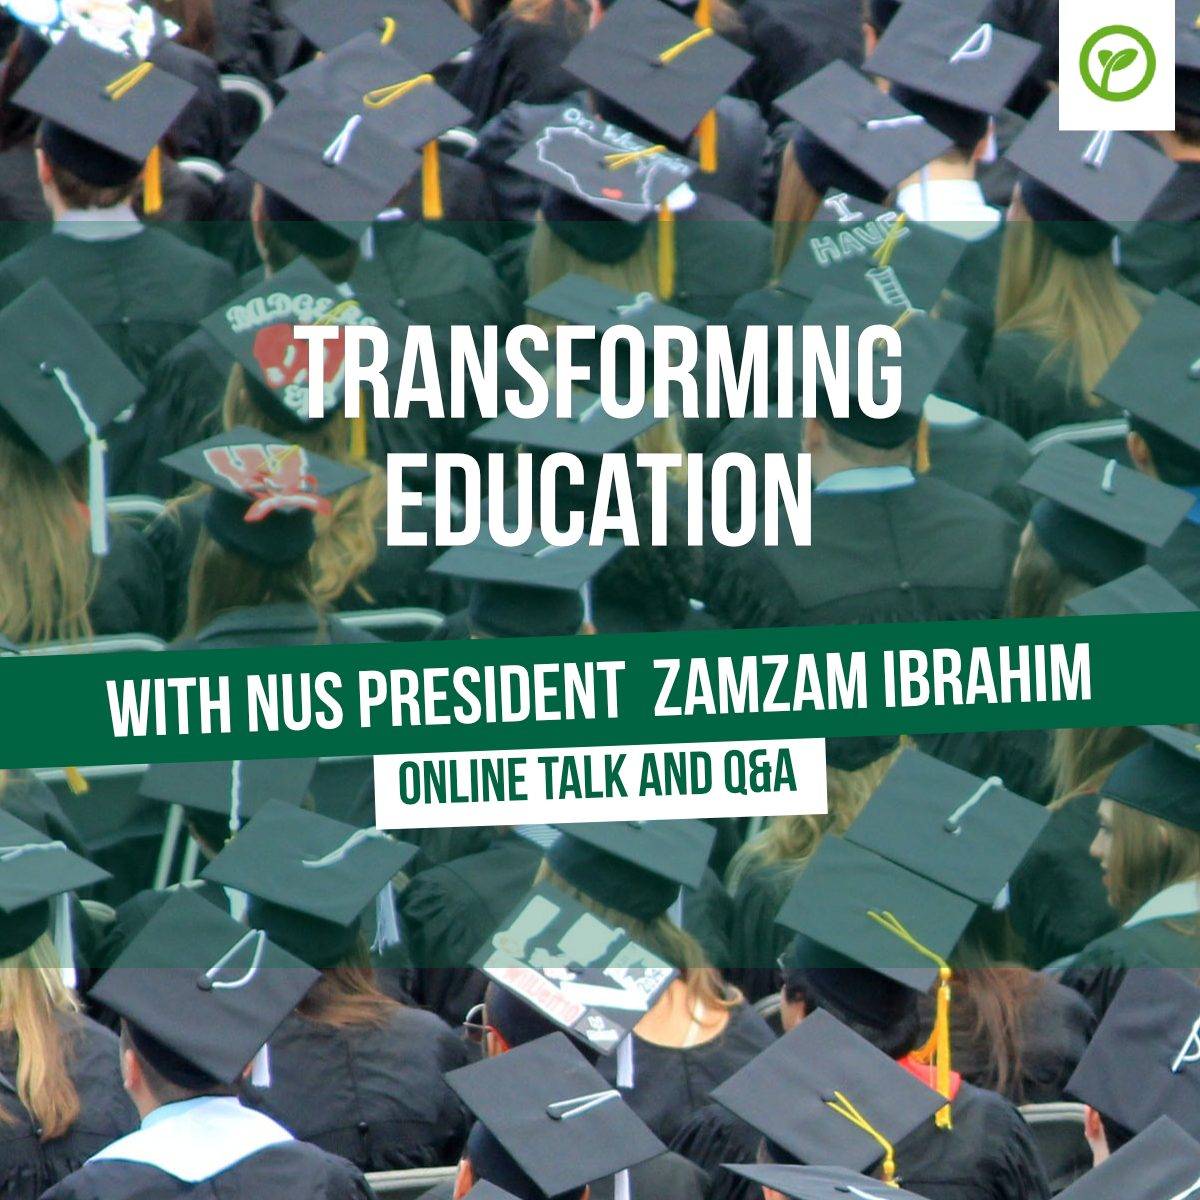 Transforming Education with NUS president Zamzam Ibrahim. Online talk and Q&A.